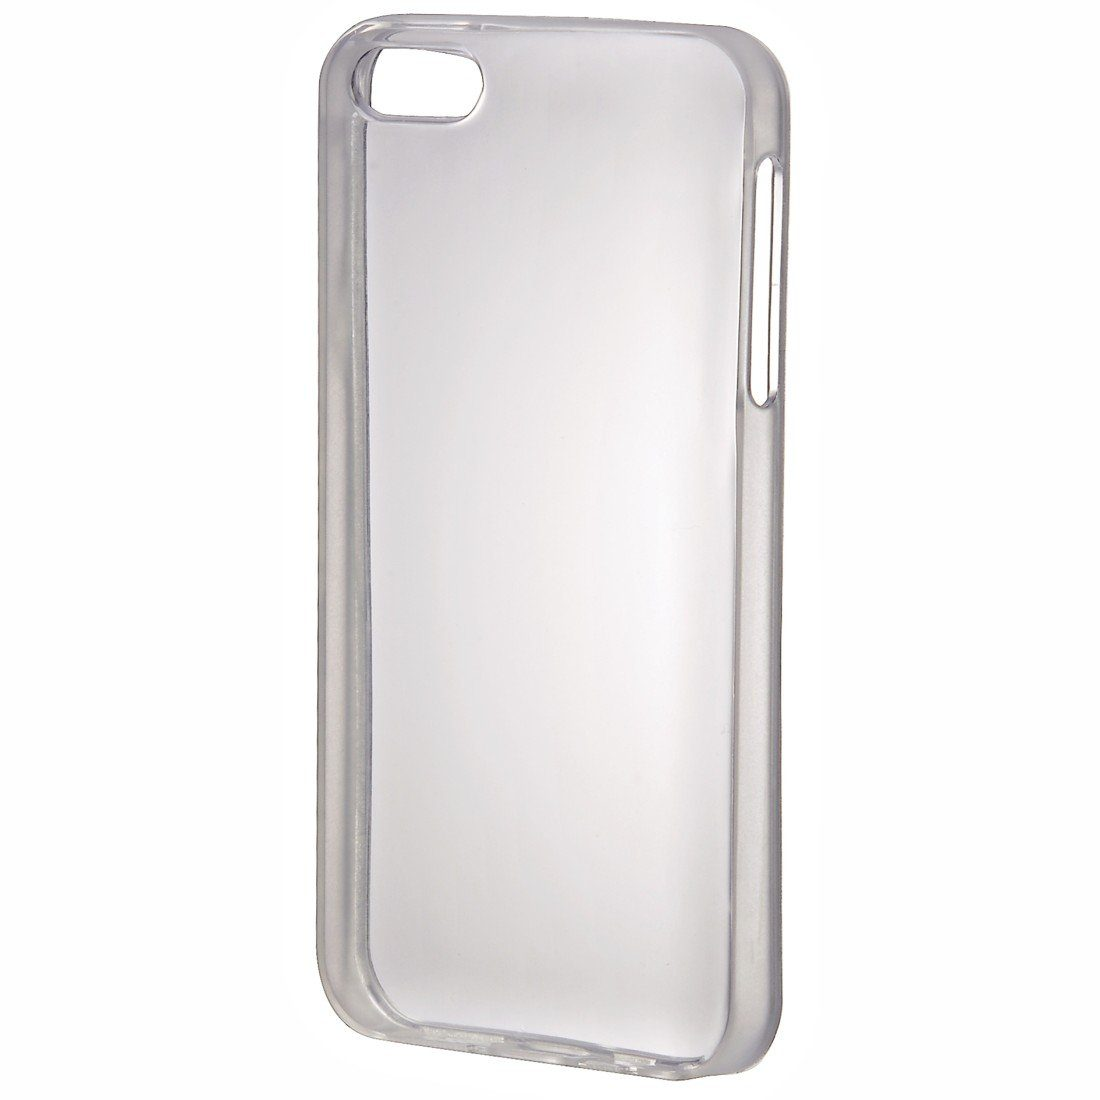 Hama Handy-Cover TPU Light für Apple iPhone 5/5s/SE, Transparent